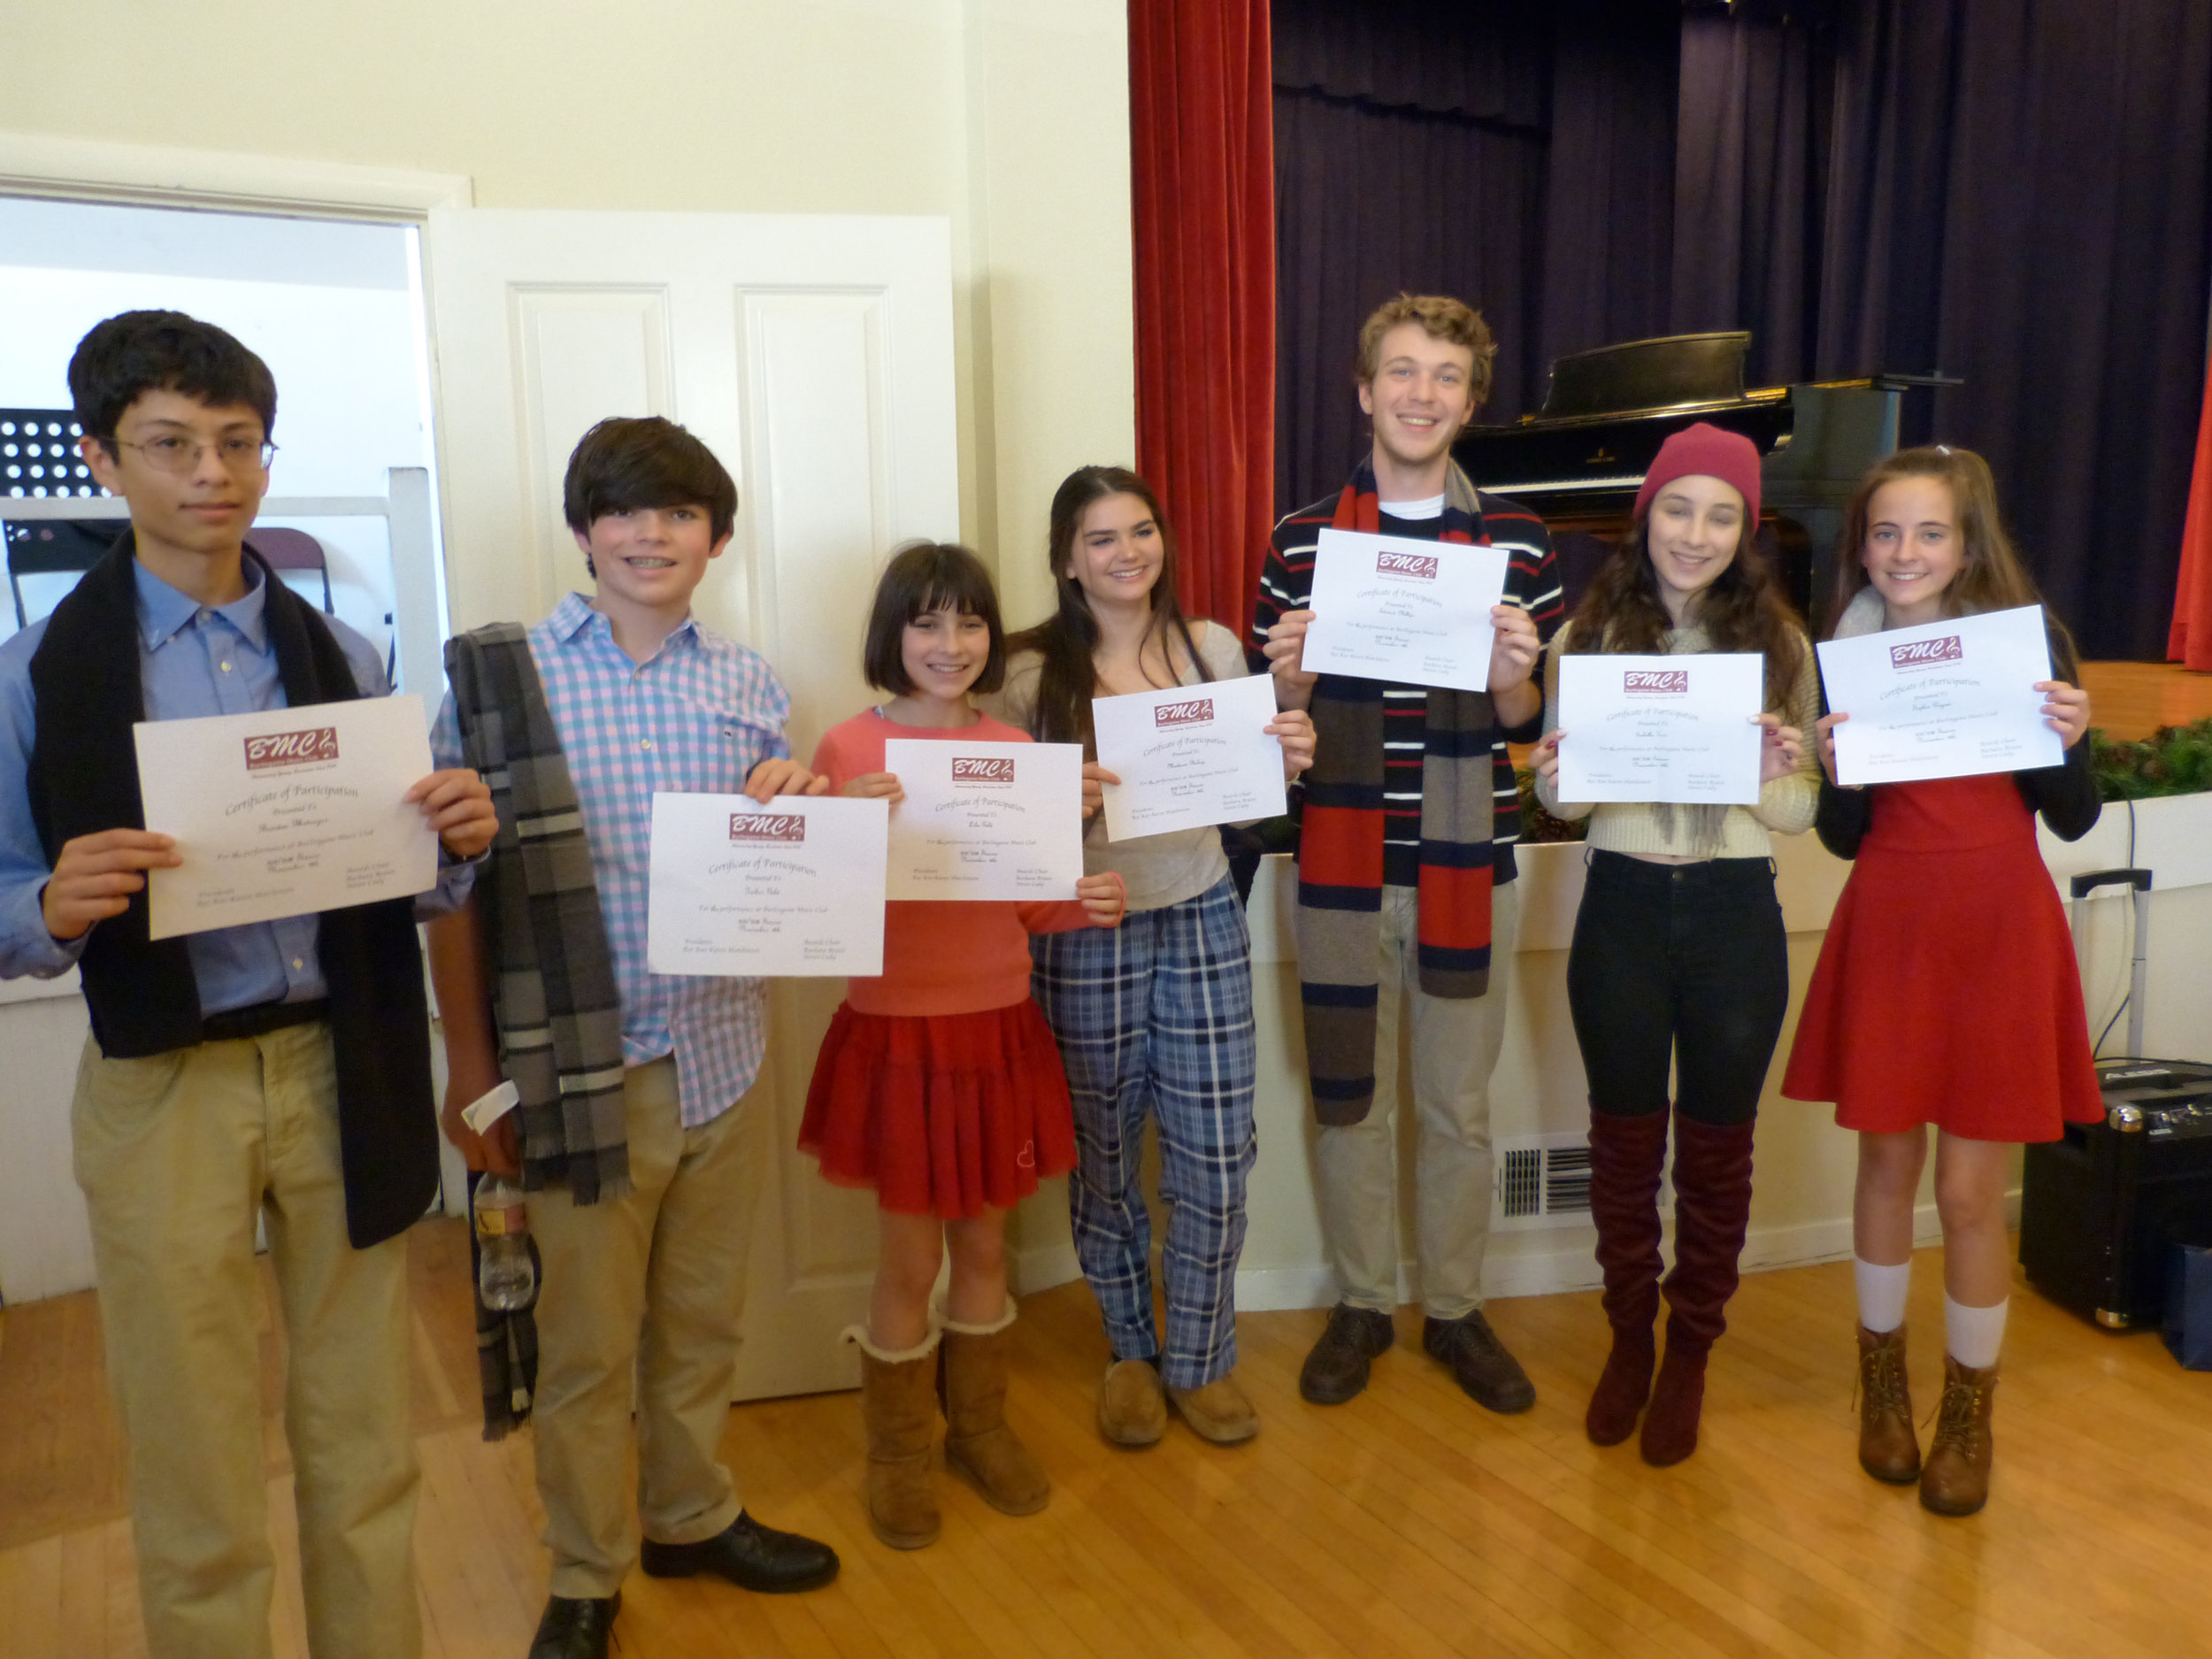 Enjoy our student performers. Help us celebrate their achievements! -